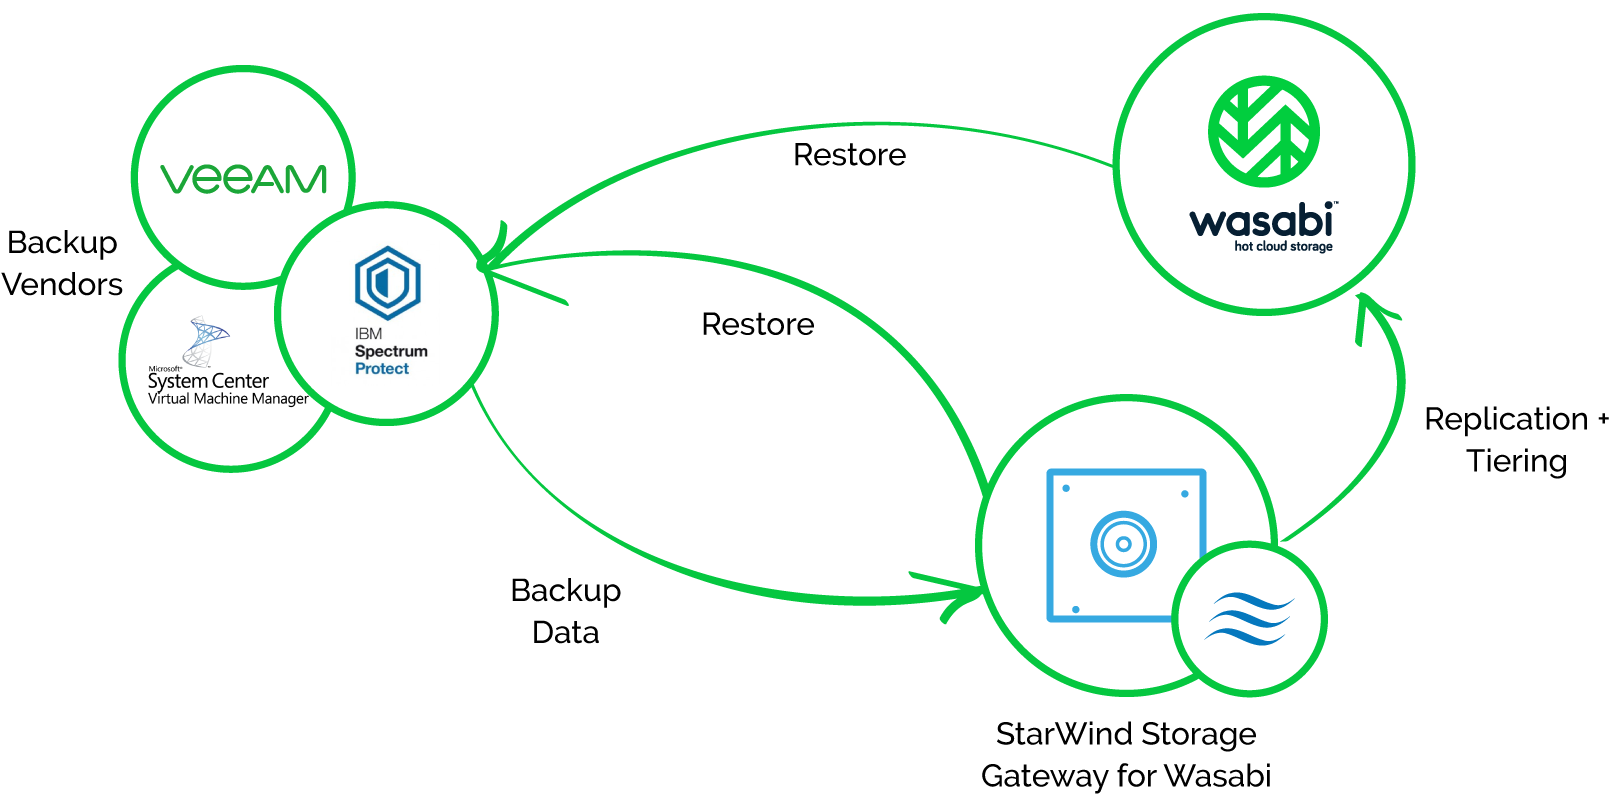 StarWind Storage Gateway for Wasabi - pic 1